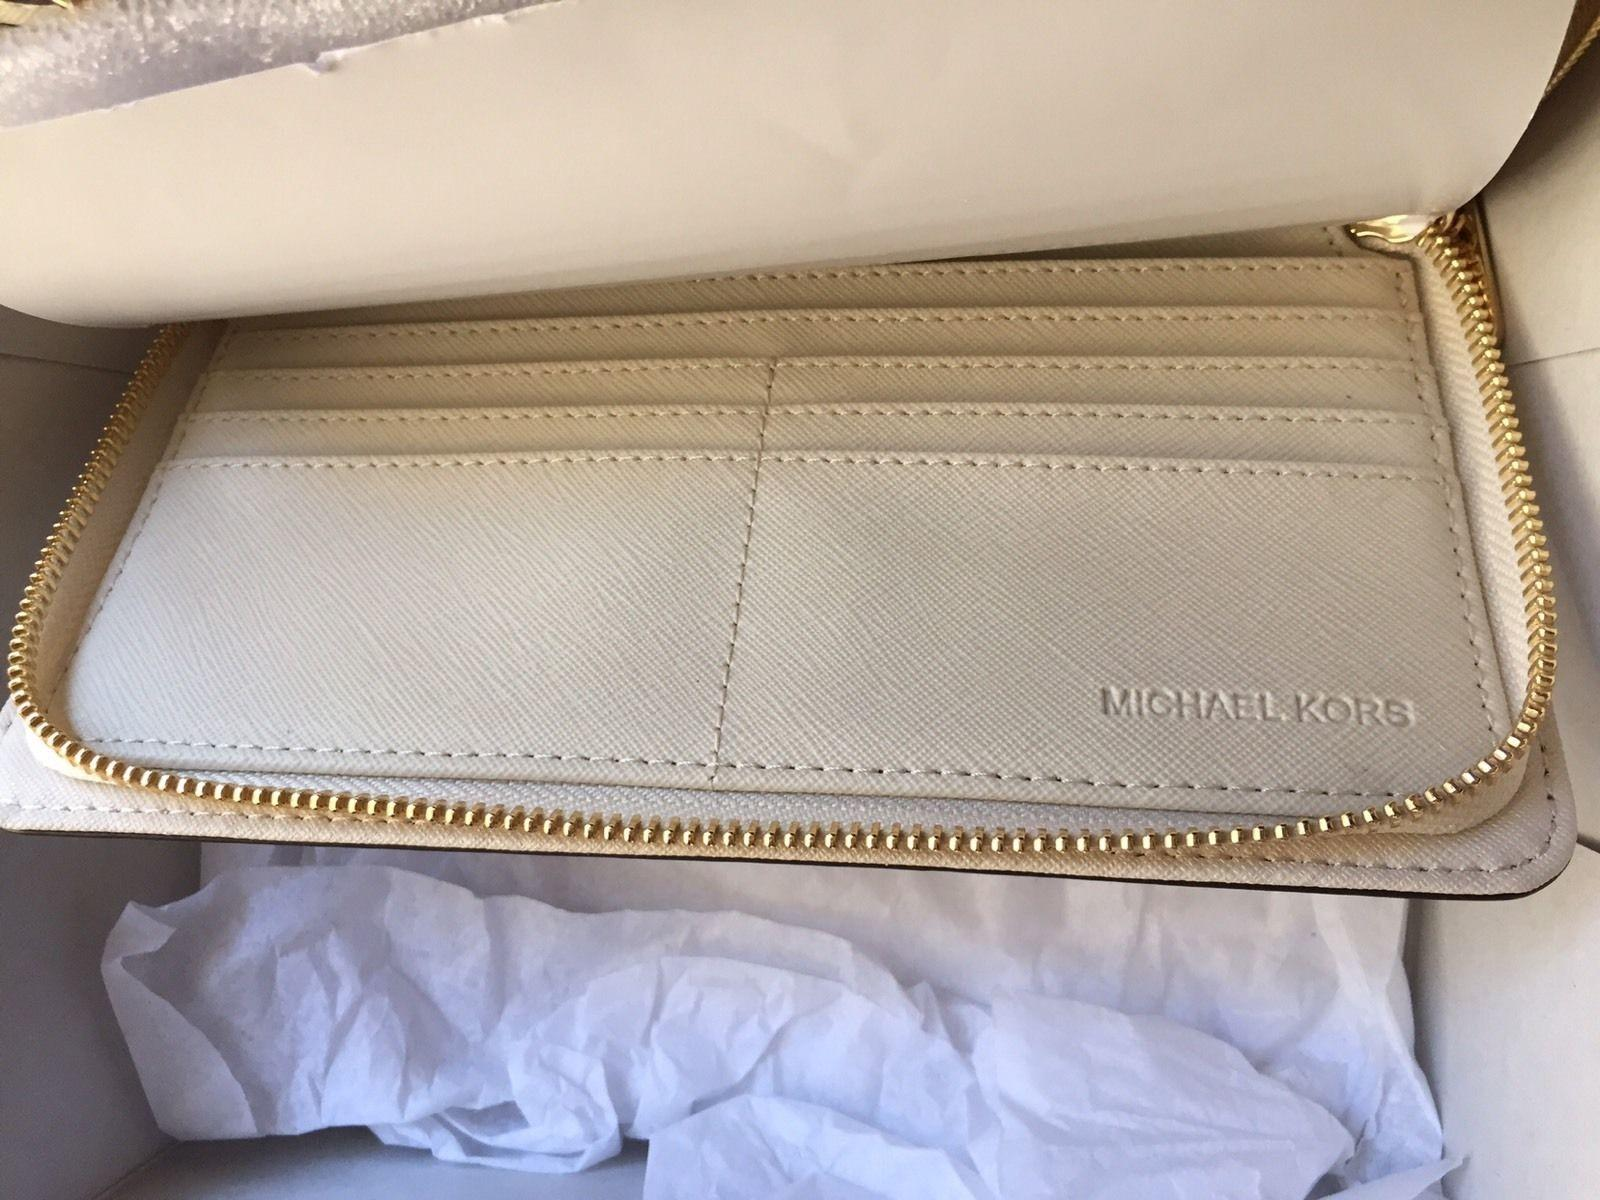 0f6d44cb721e ... authentic michael kors large hamilton zip around wallet new with tags  ivory ecru gold tone hardware